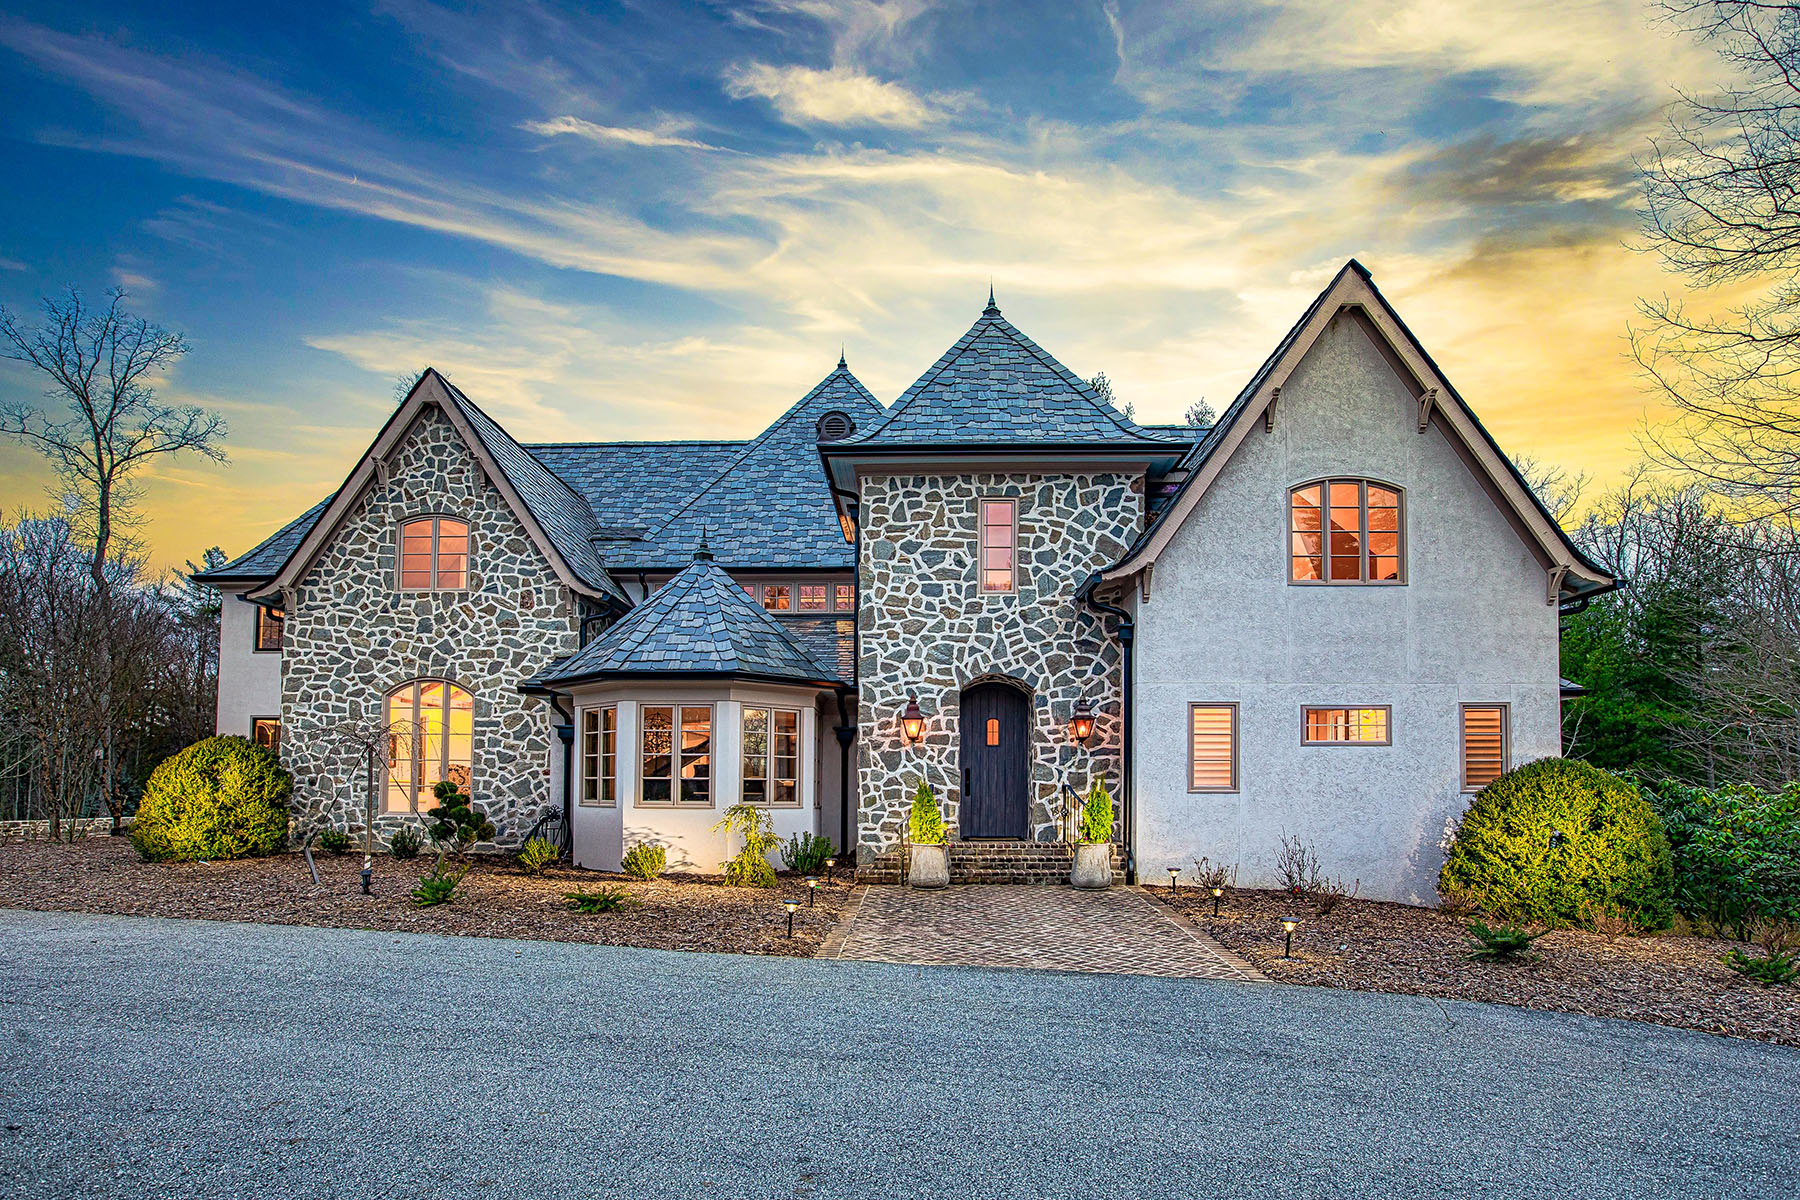 Single Family Homes for Active at BILTMORE FOREST 39 Cedar Hill Dr Asheville, North Carolina 28803 United States